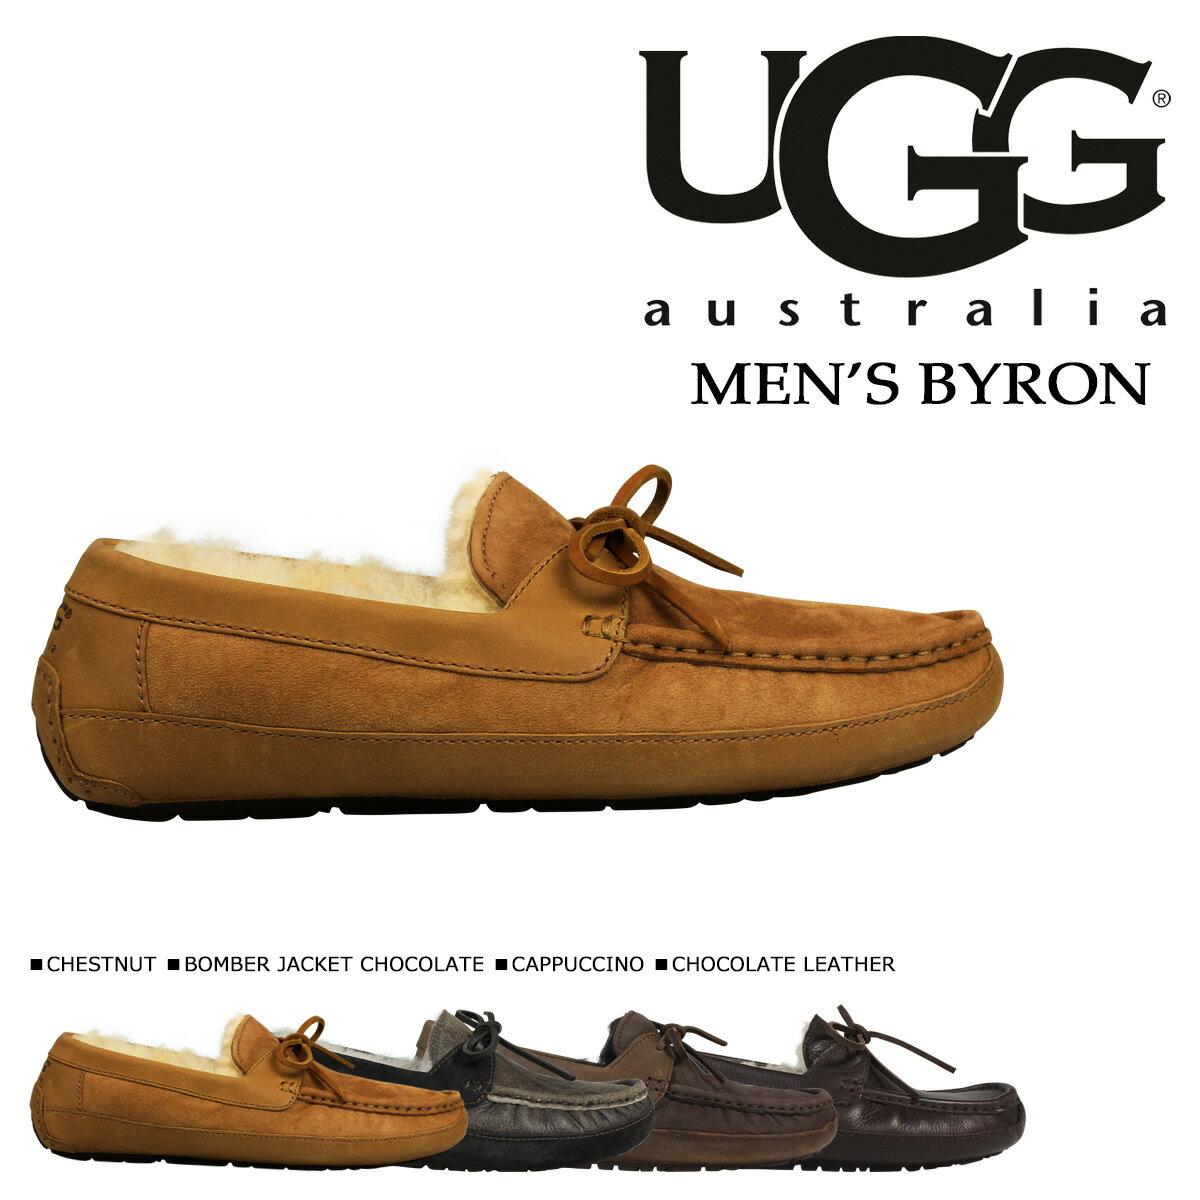 400f715ec3a Mens Byron Moccasin Ugg Slippers - cheap watches mgc-gas.com